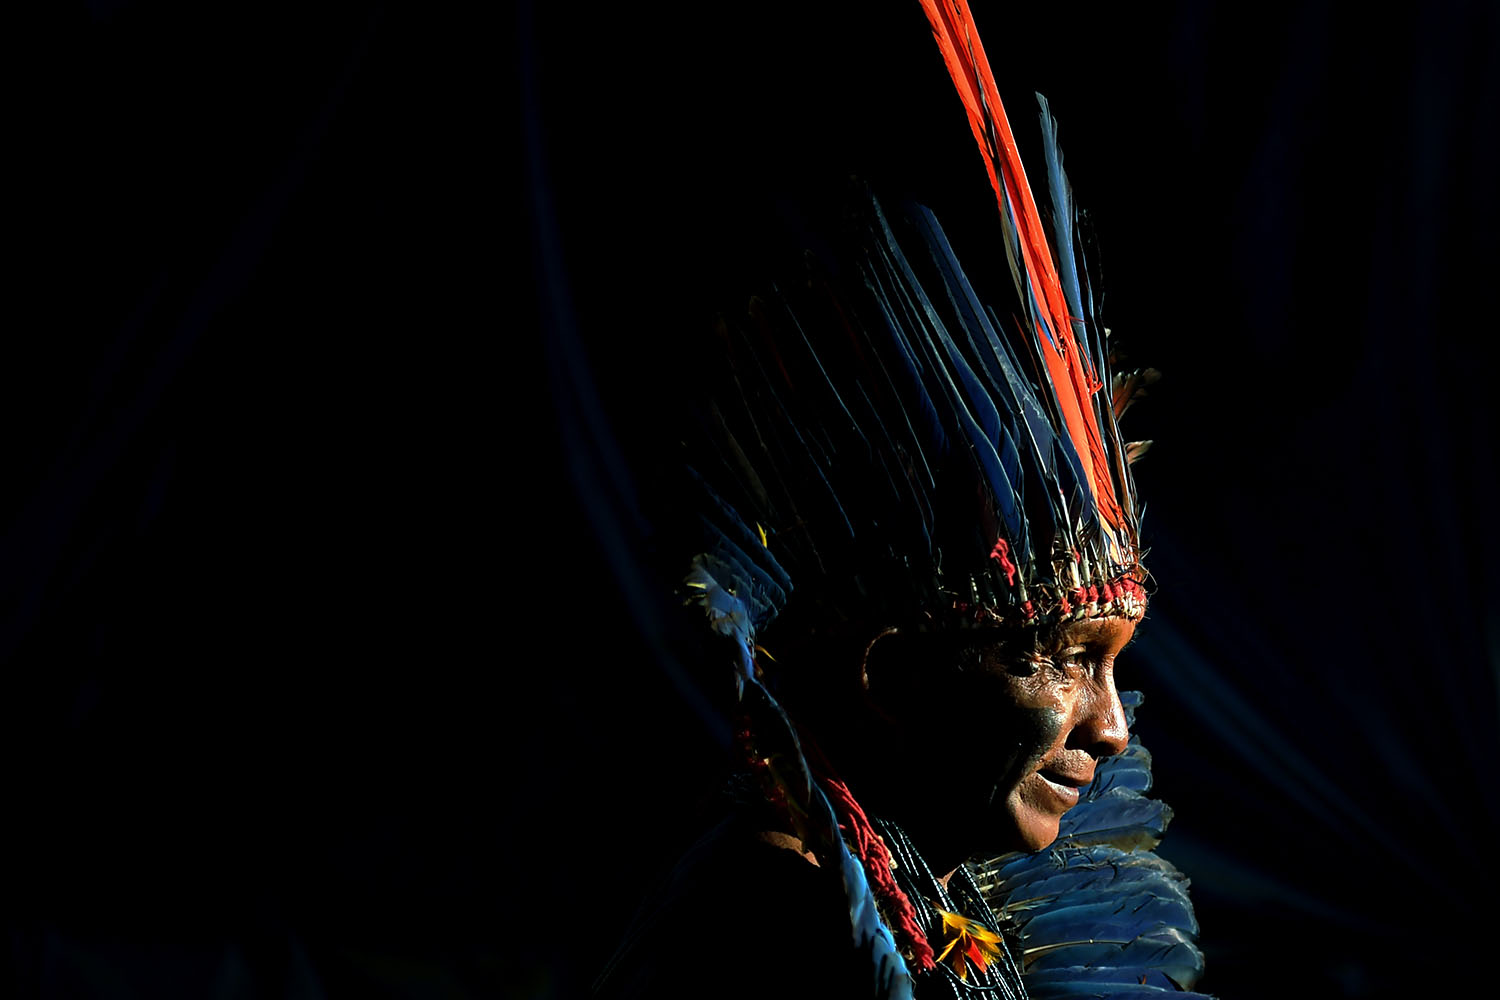 An indigenous man from the Arara tribe poses at a protest camp in Brasilia on April 25. Approximately 4,000 indigenous people from different tribes are taking part in protests during the Indigenous National Mobilization week, which seeks to tackle territorial rights' negotiations with the government. CARL DE SOUZA/AFP/Getty Images